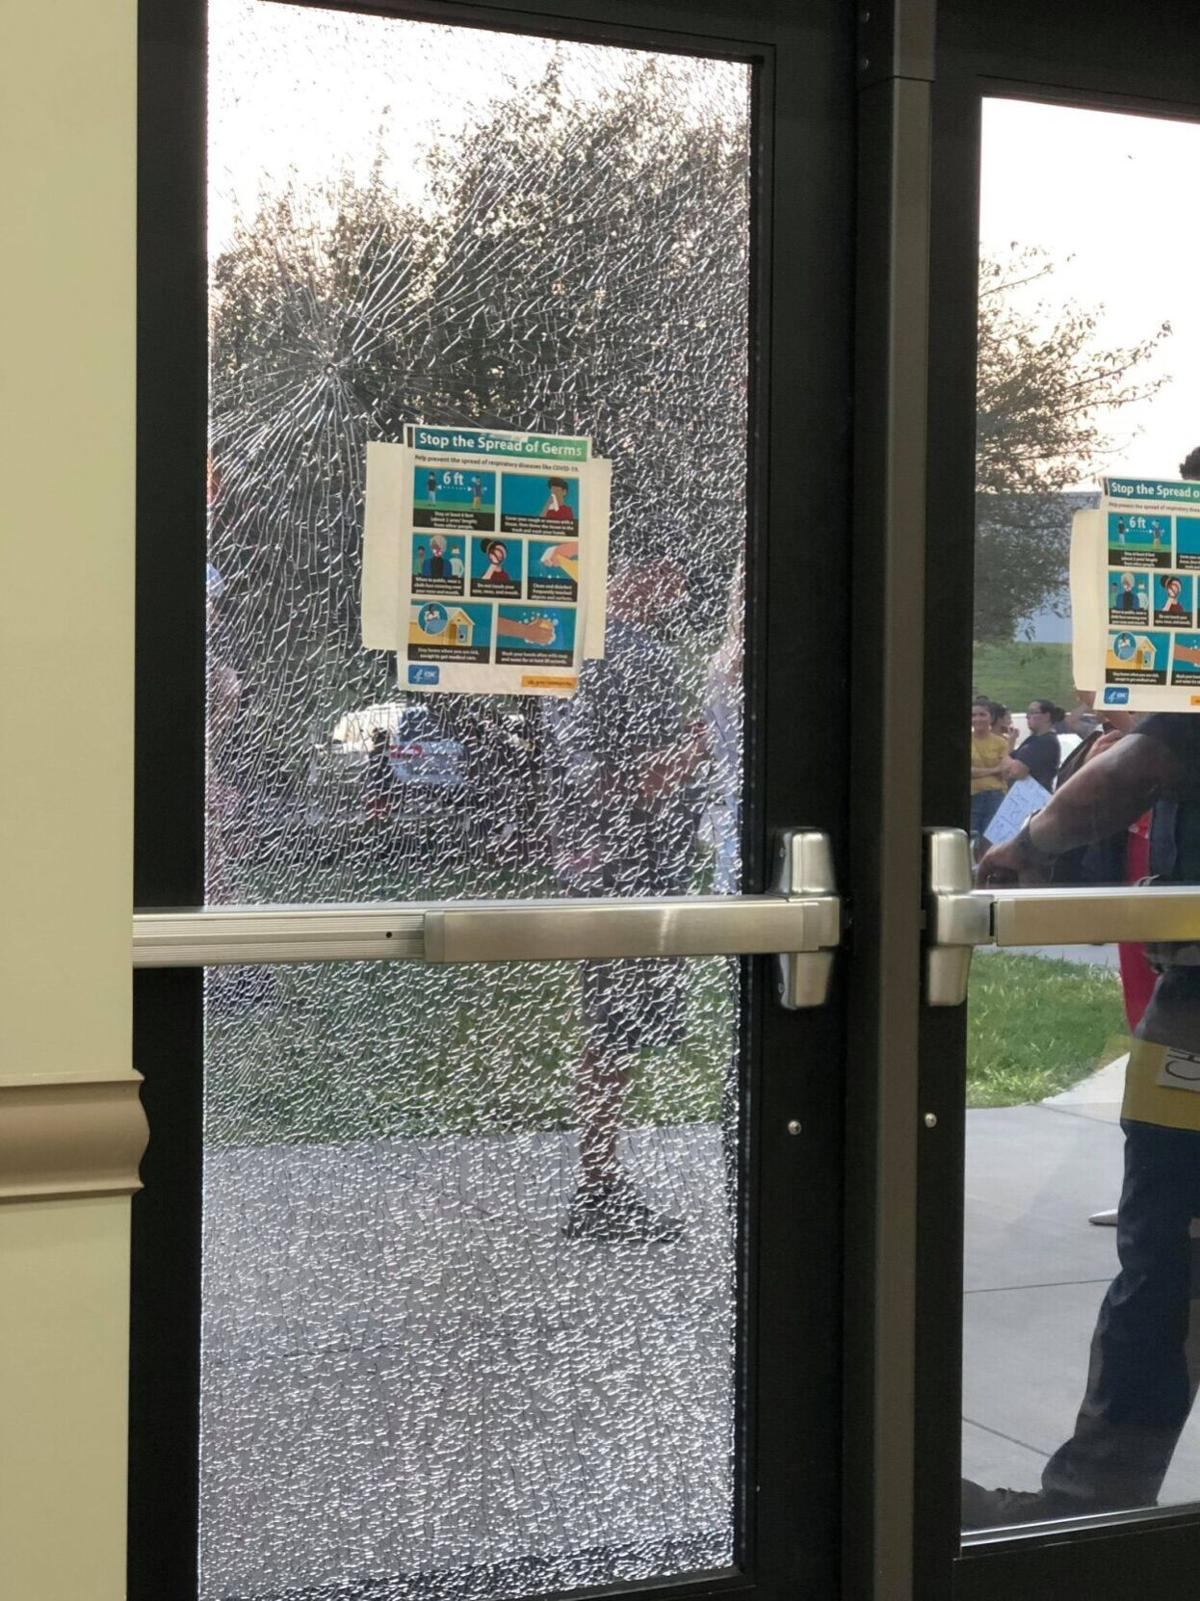 A door to the Career Academy & Technical School where Iredell-Statesville Schools held Monday's meeting was broken by protesters outside in Troutman on Monday.